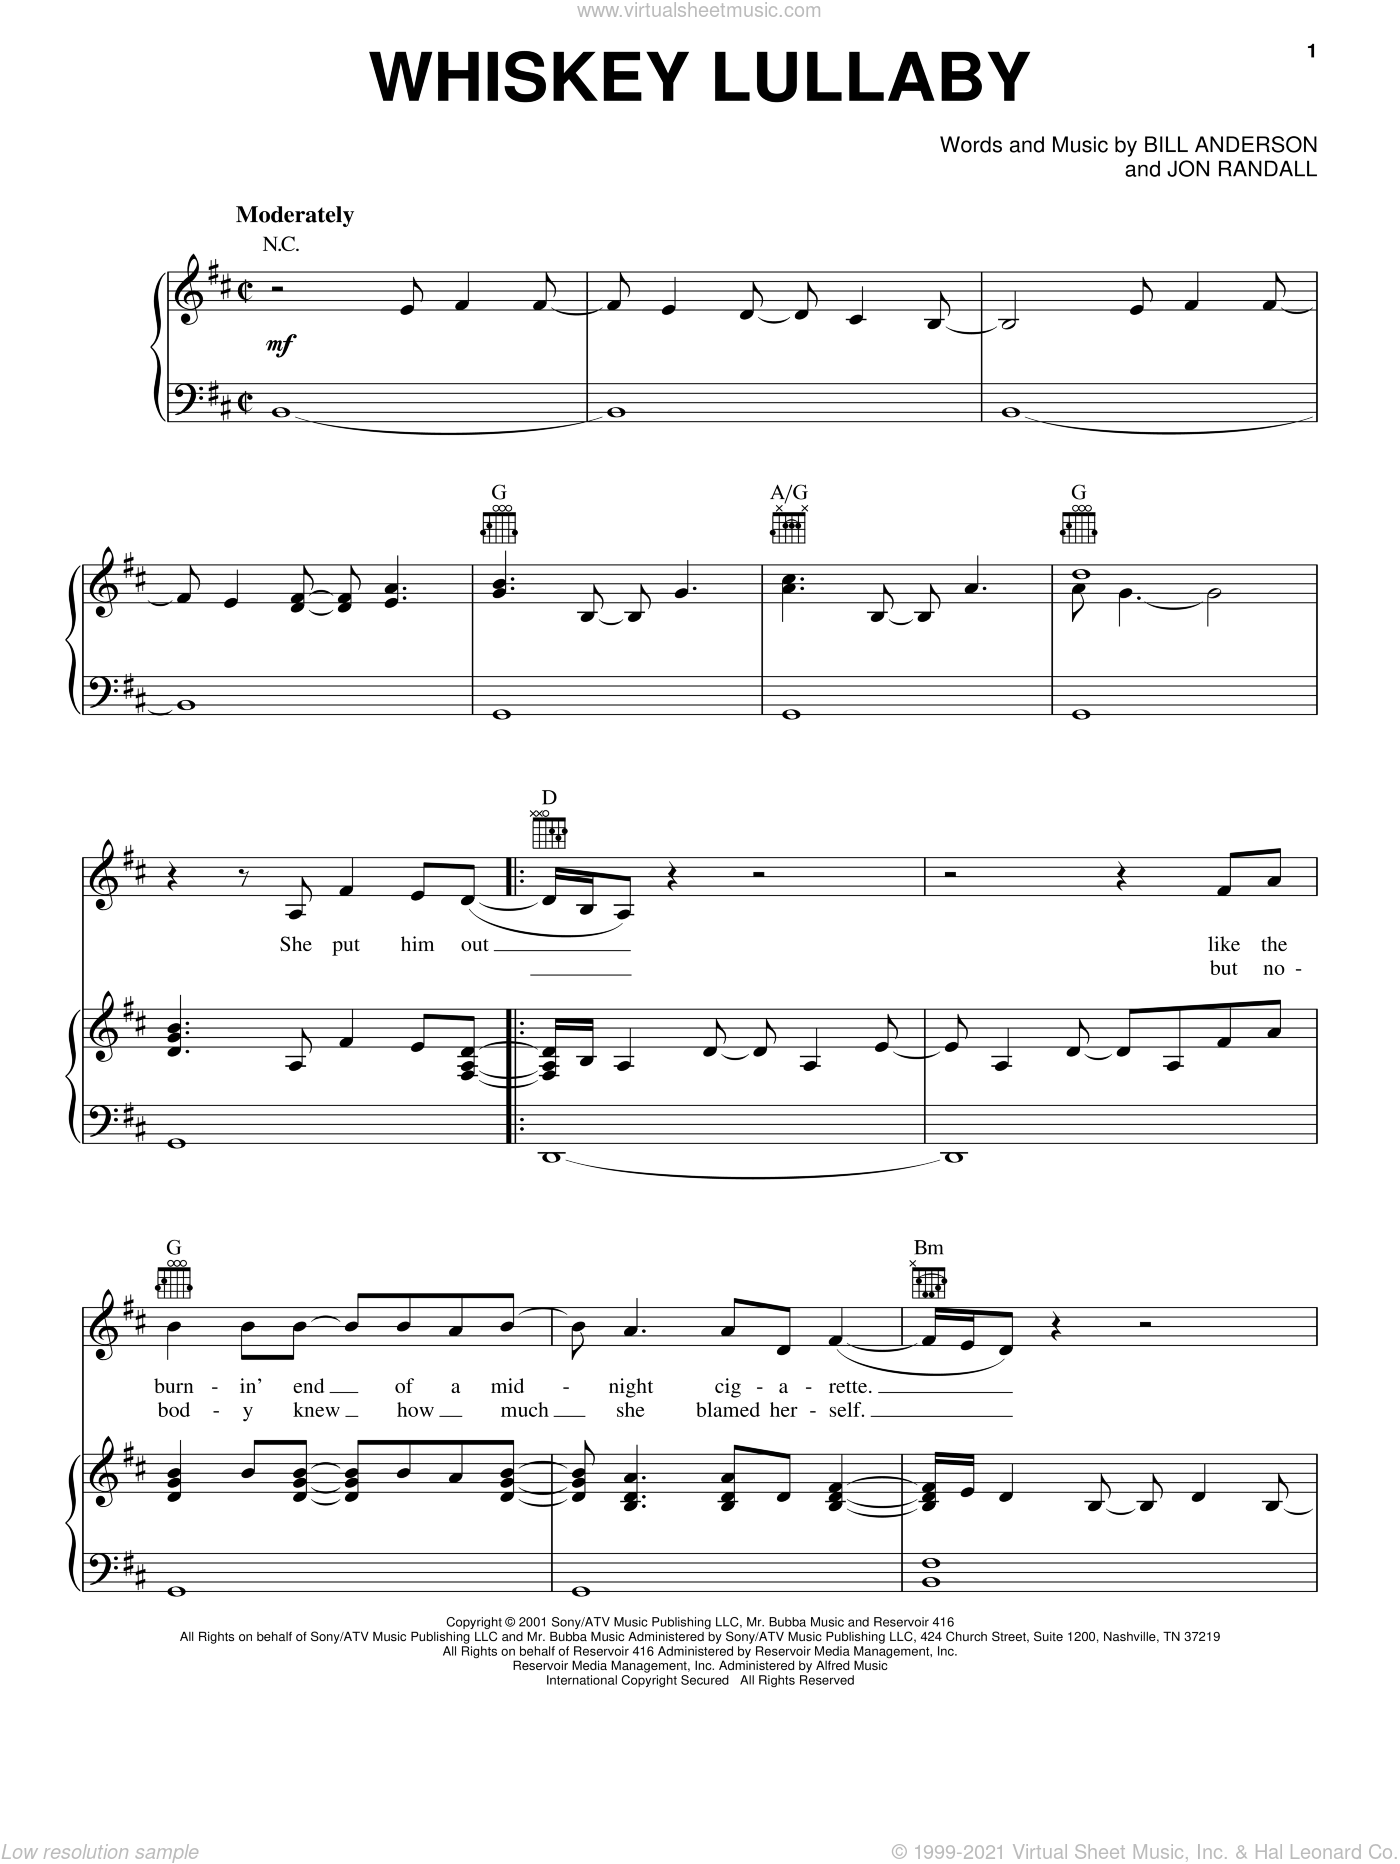 Paisley - Whiskey Lullaby sheet music for voice, piano or guitar